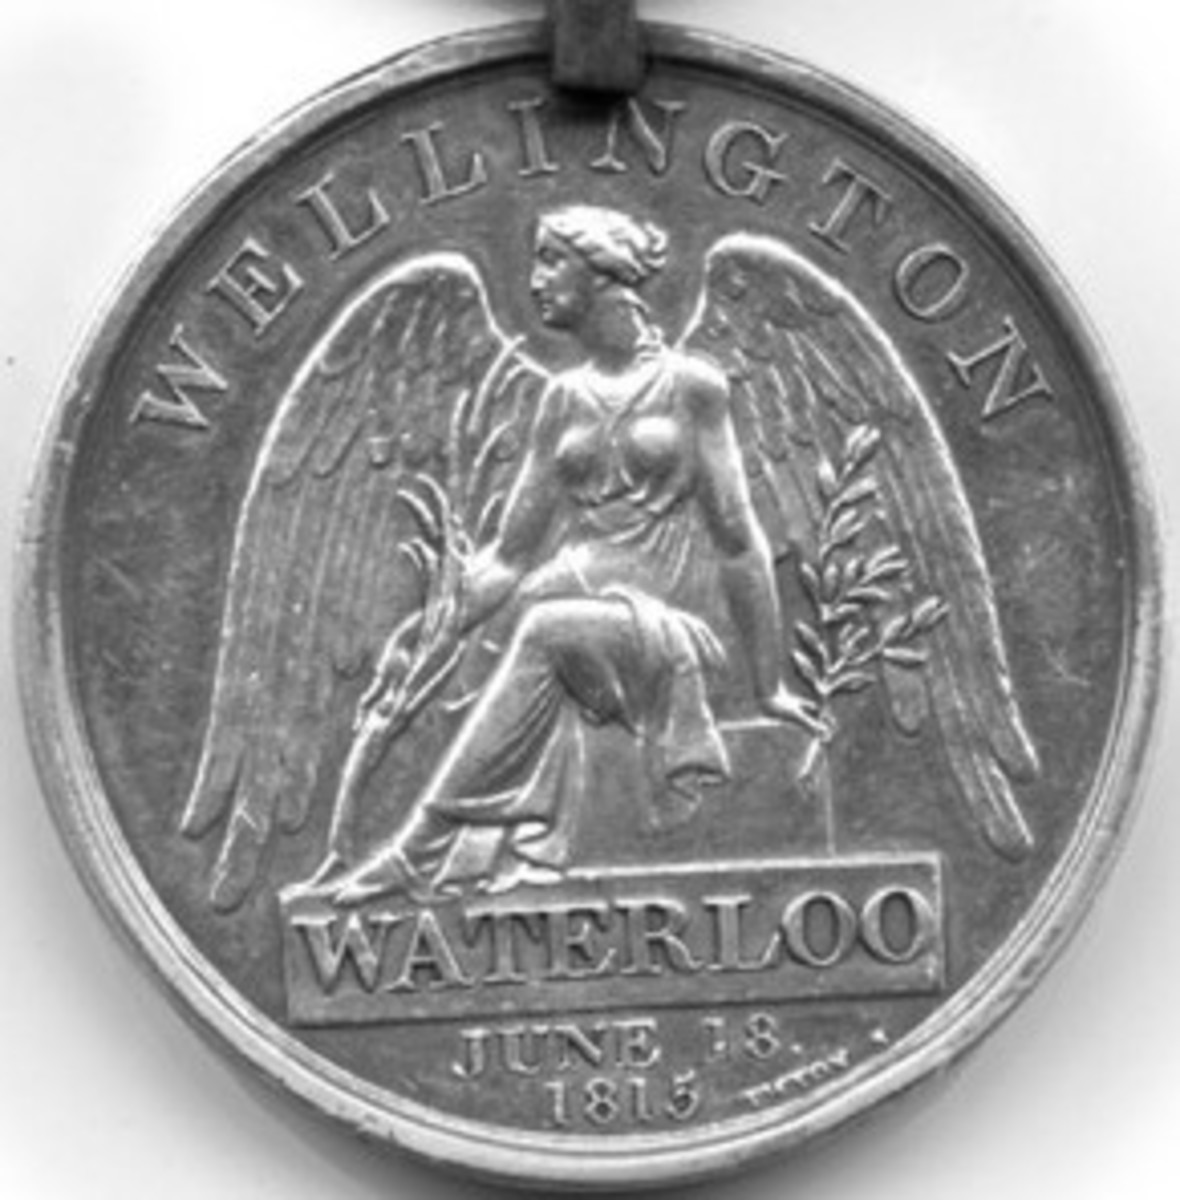 The Waterloo Medal (Reverse)